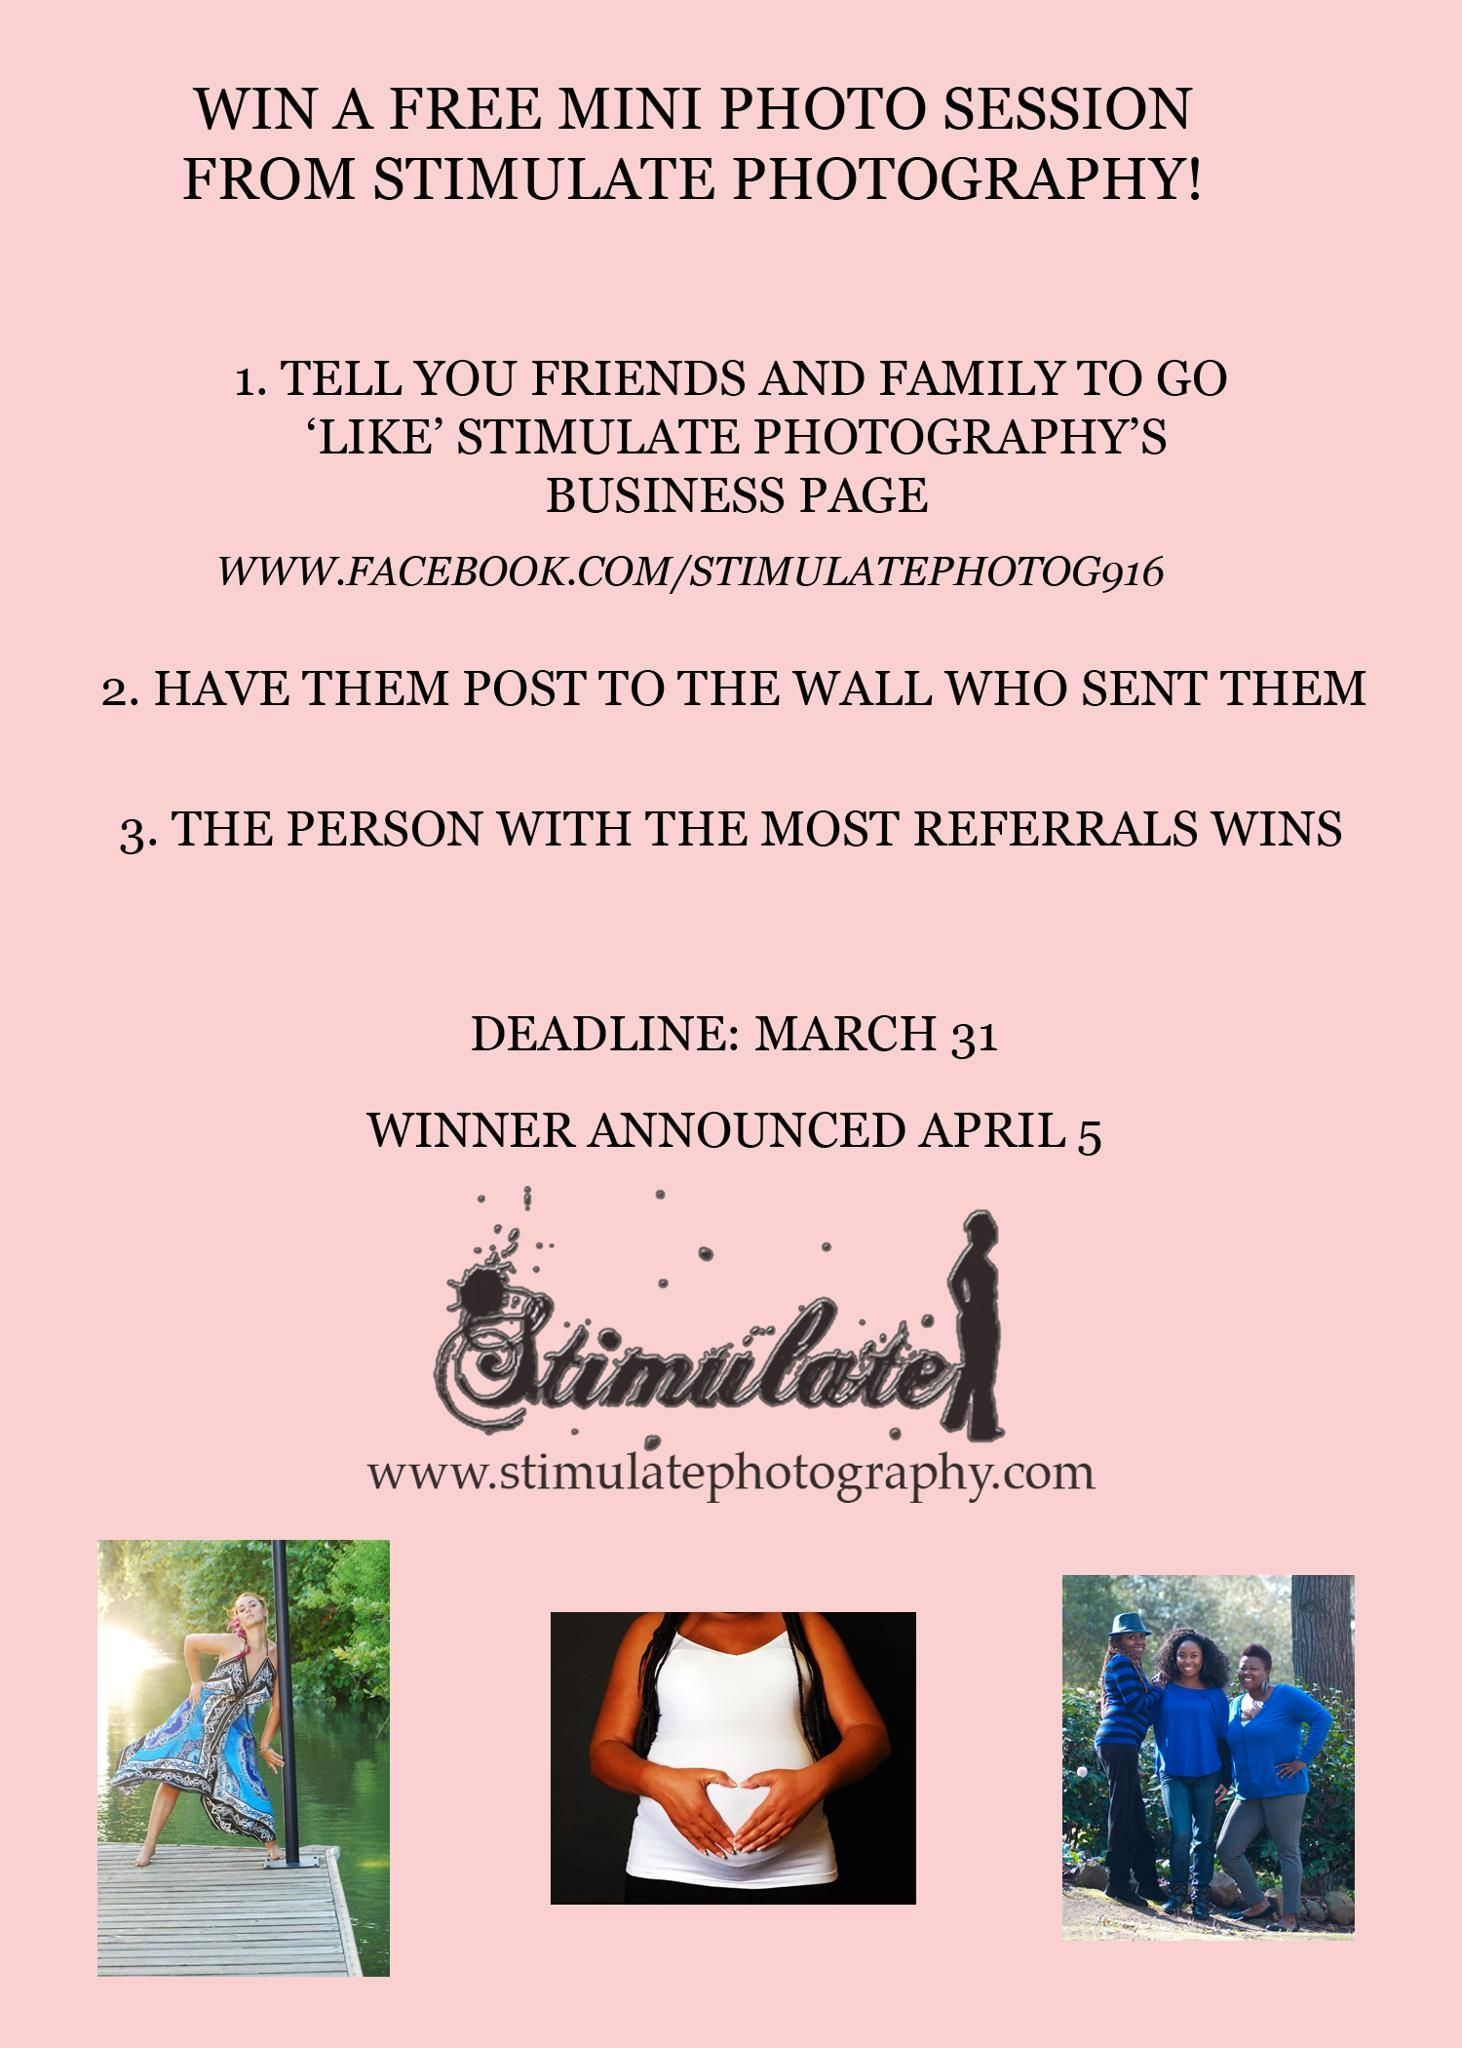 Refer your friends and family and win a free mini photo session!